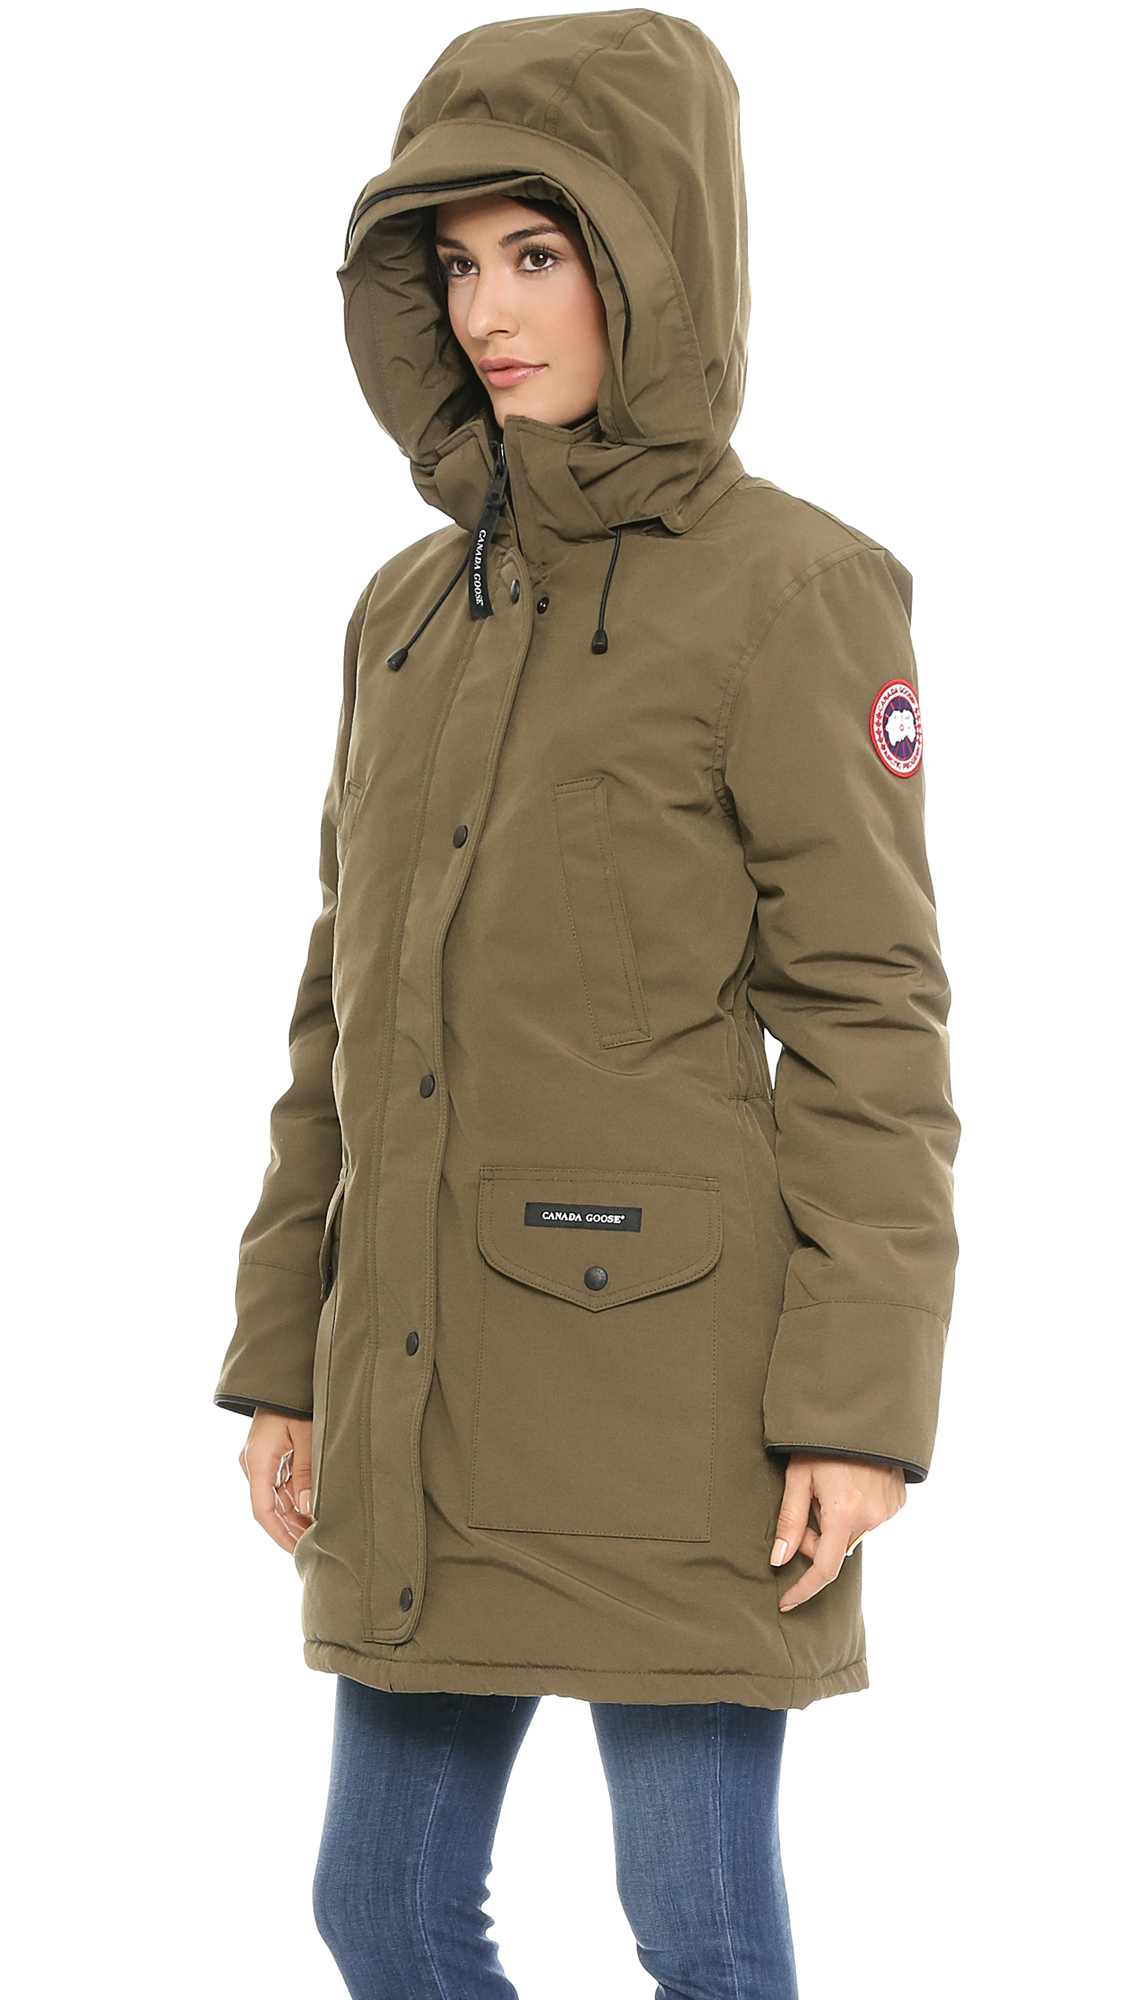 Every single one of our womens jackets & coats give a nod to our history of timeless looks and consistent quality. With materials such as faux fur, sherpa lining, wool, vegan leather, denim, canvas, genuine down fill, and super soft twill, Abercrombie & Fitch produces only the finest in jackets, coats, vests, and more.